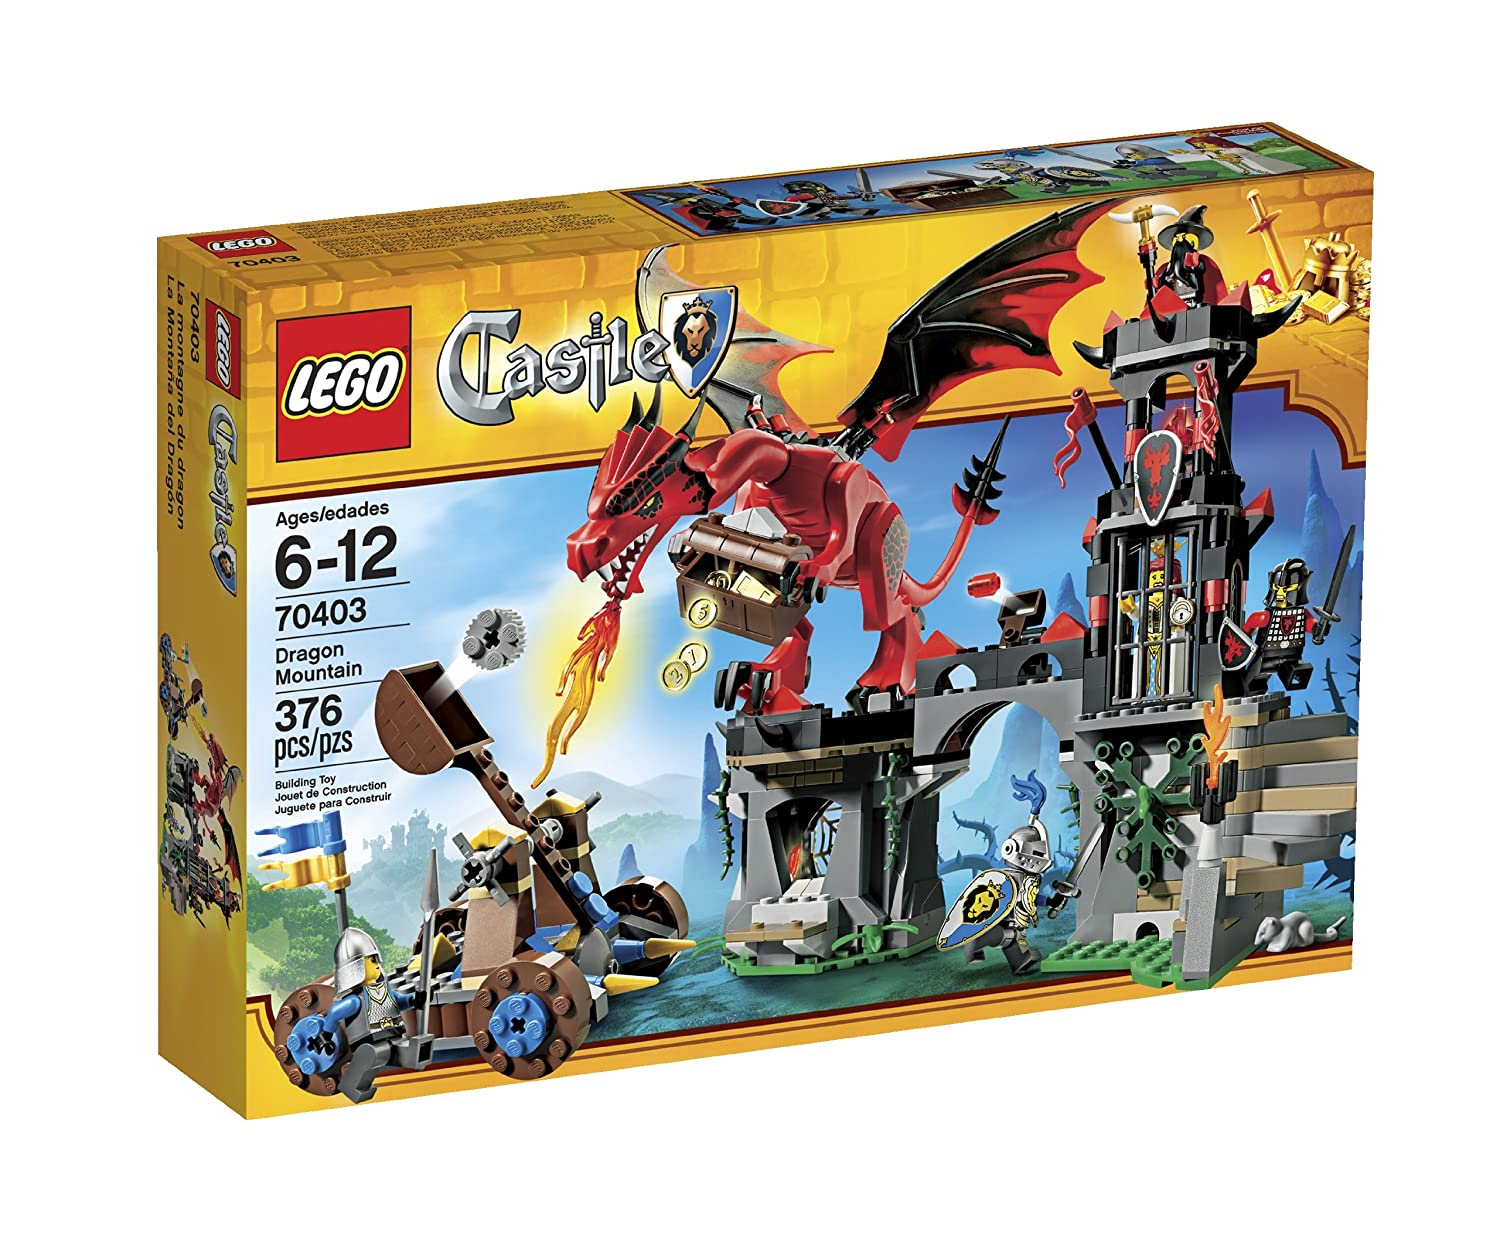 Amazon - Lego Castle Dragon Mountain - 70403 - $32.99